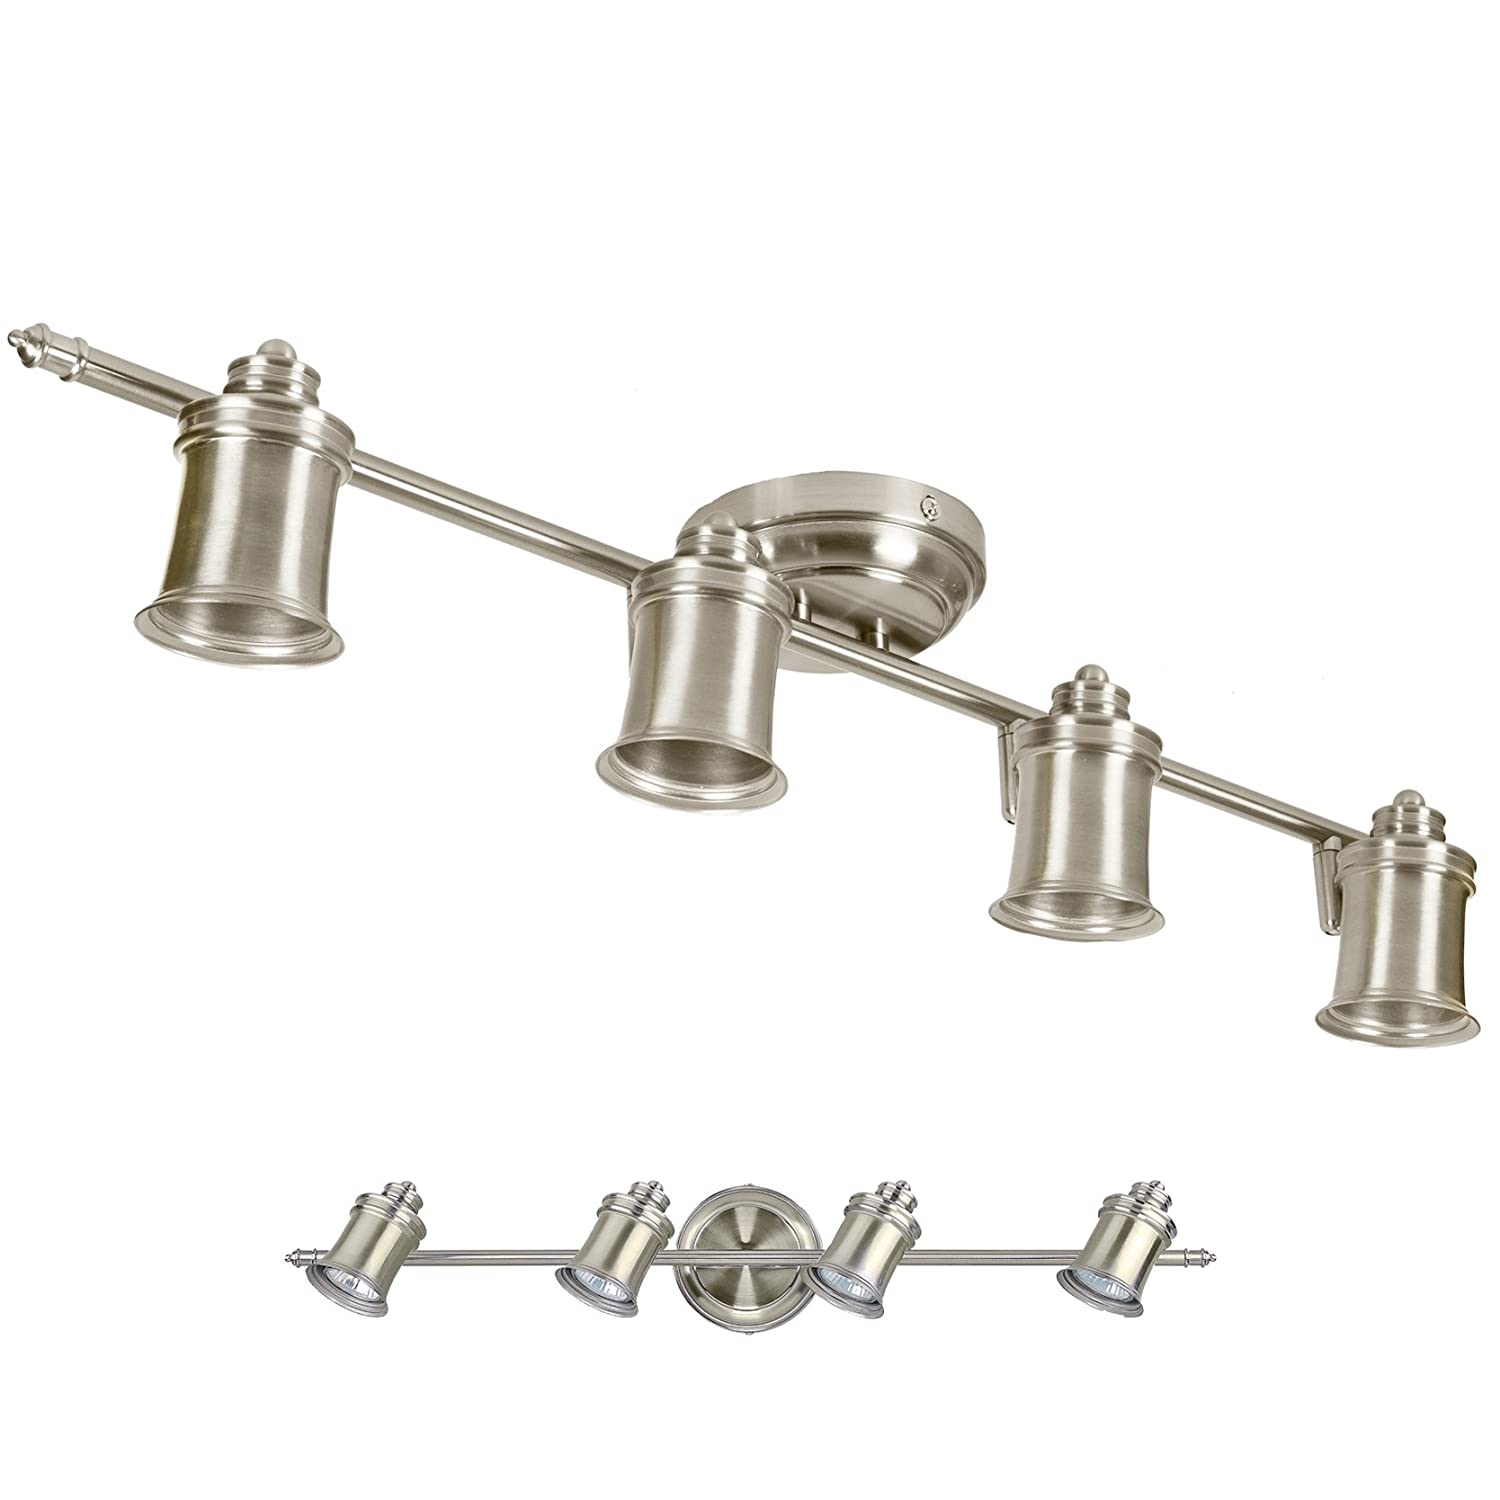 Brushed Nickel Light Track Lighting Ceiling Or Wall Adjustable - Kitchen and bathroom lights